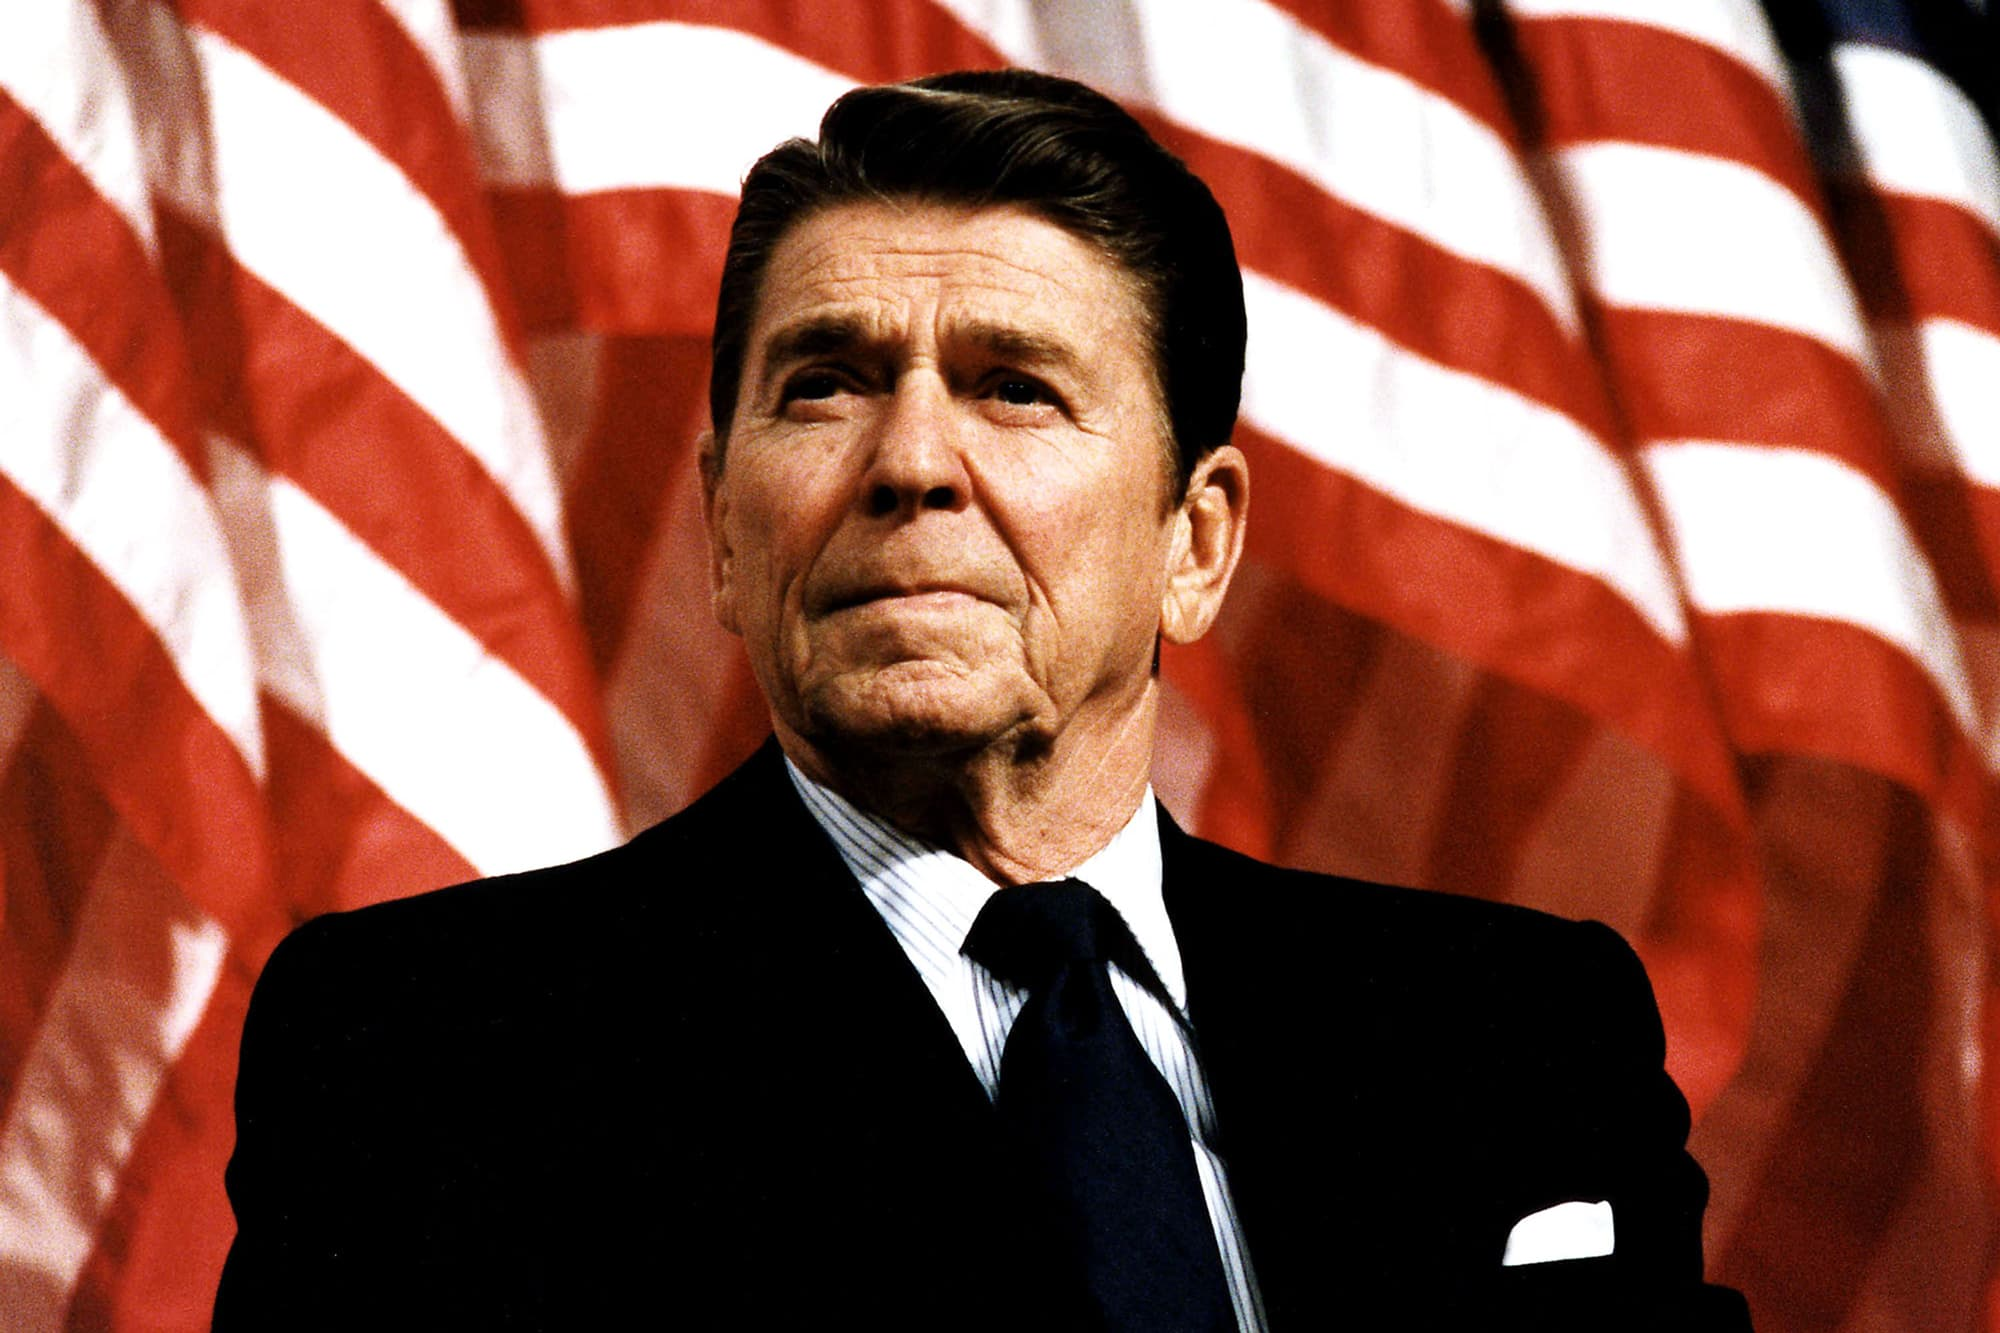 when did republicans become obsessed with reagan?